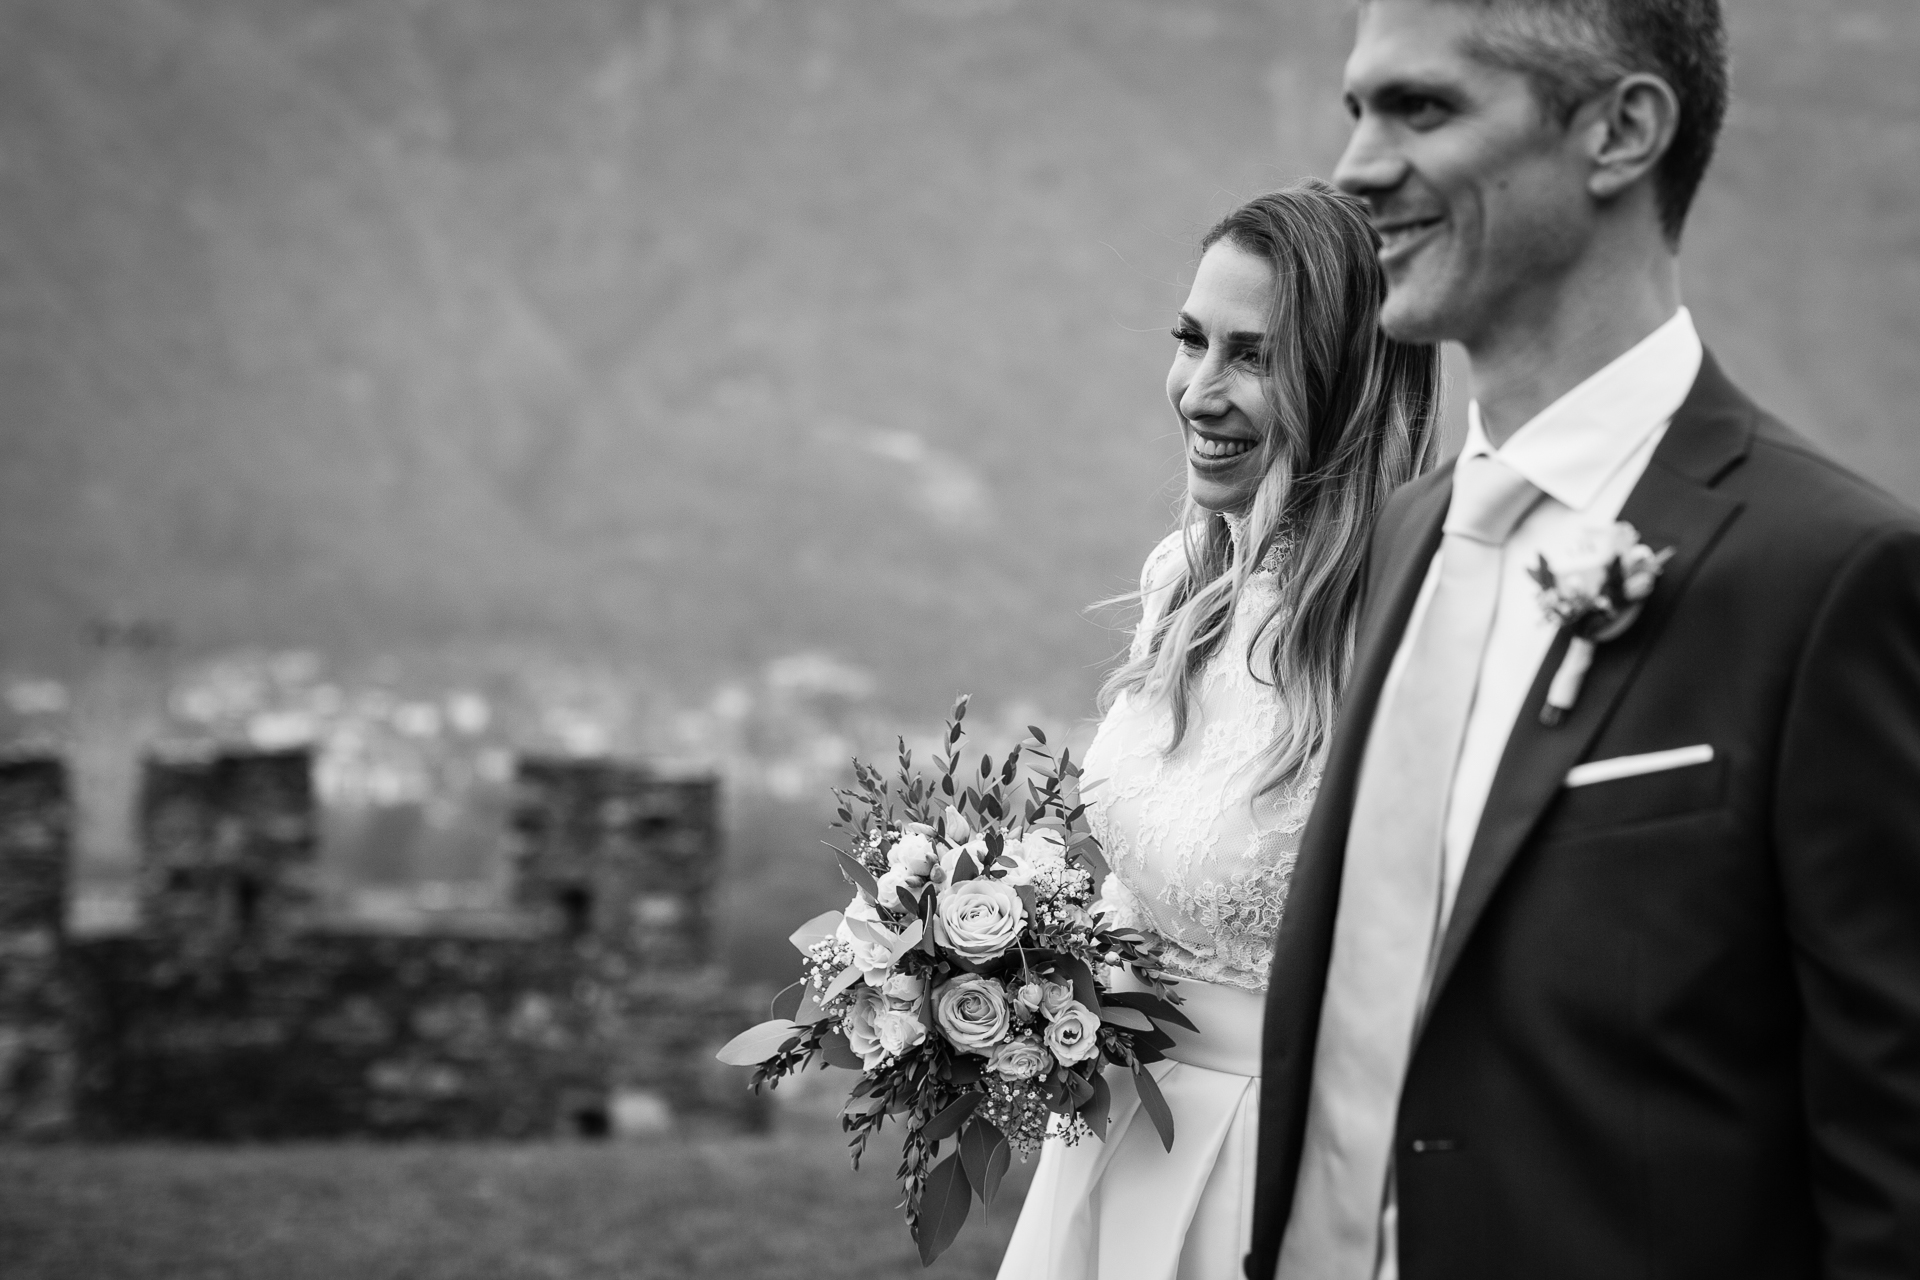 Switzerland Elopement Couple Posed Portrait | After the ceremony, the bride and groom have a small photo session